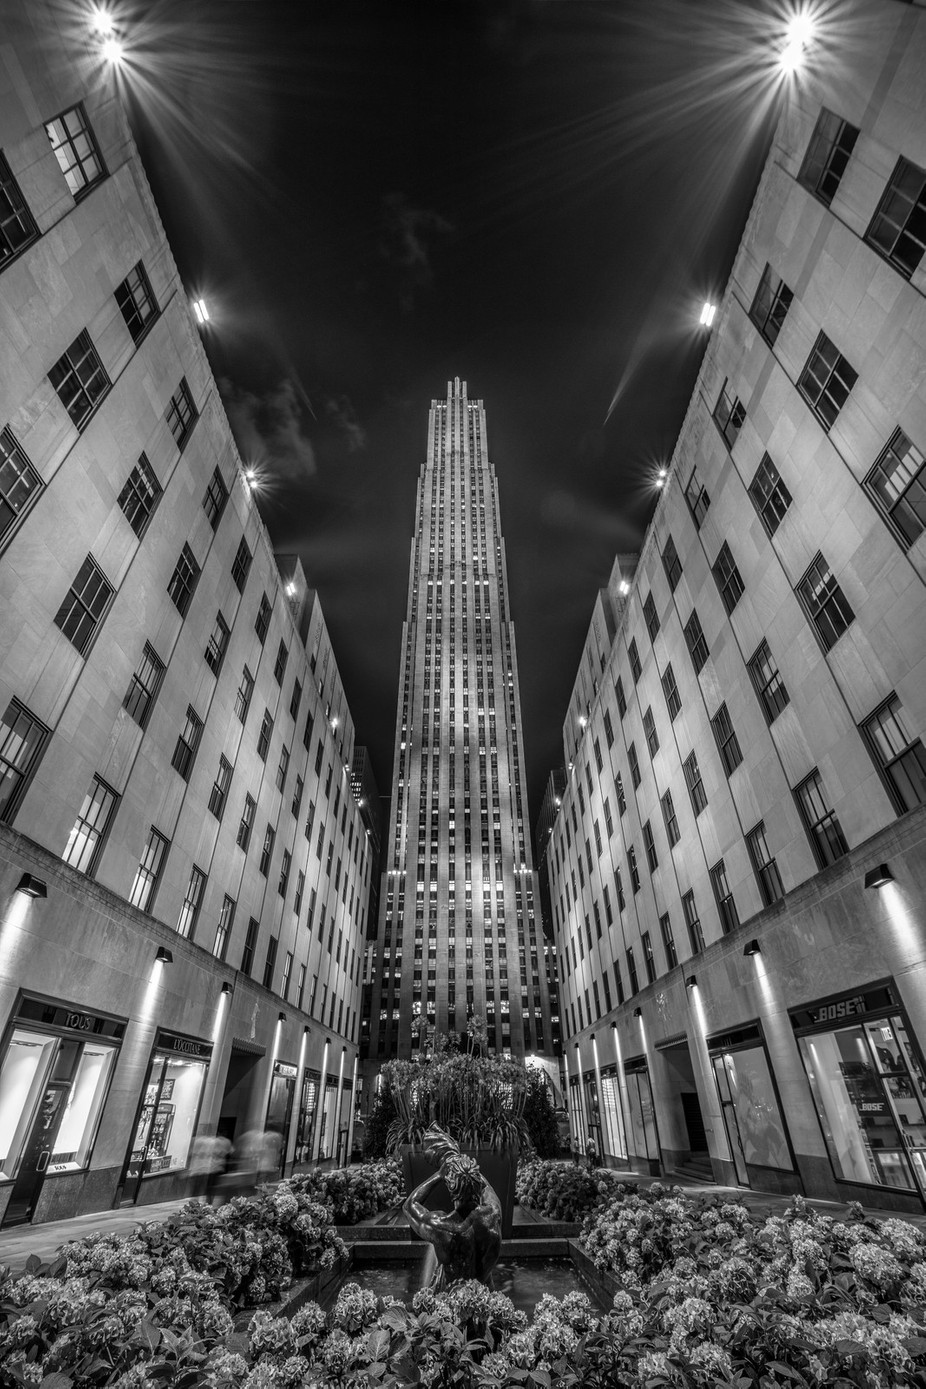 Rockefeller Center, New York, New York, USA by larrymarshall - Black And White Architecture Photo Contest